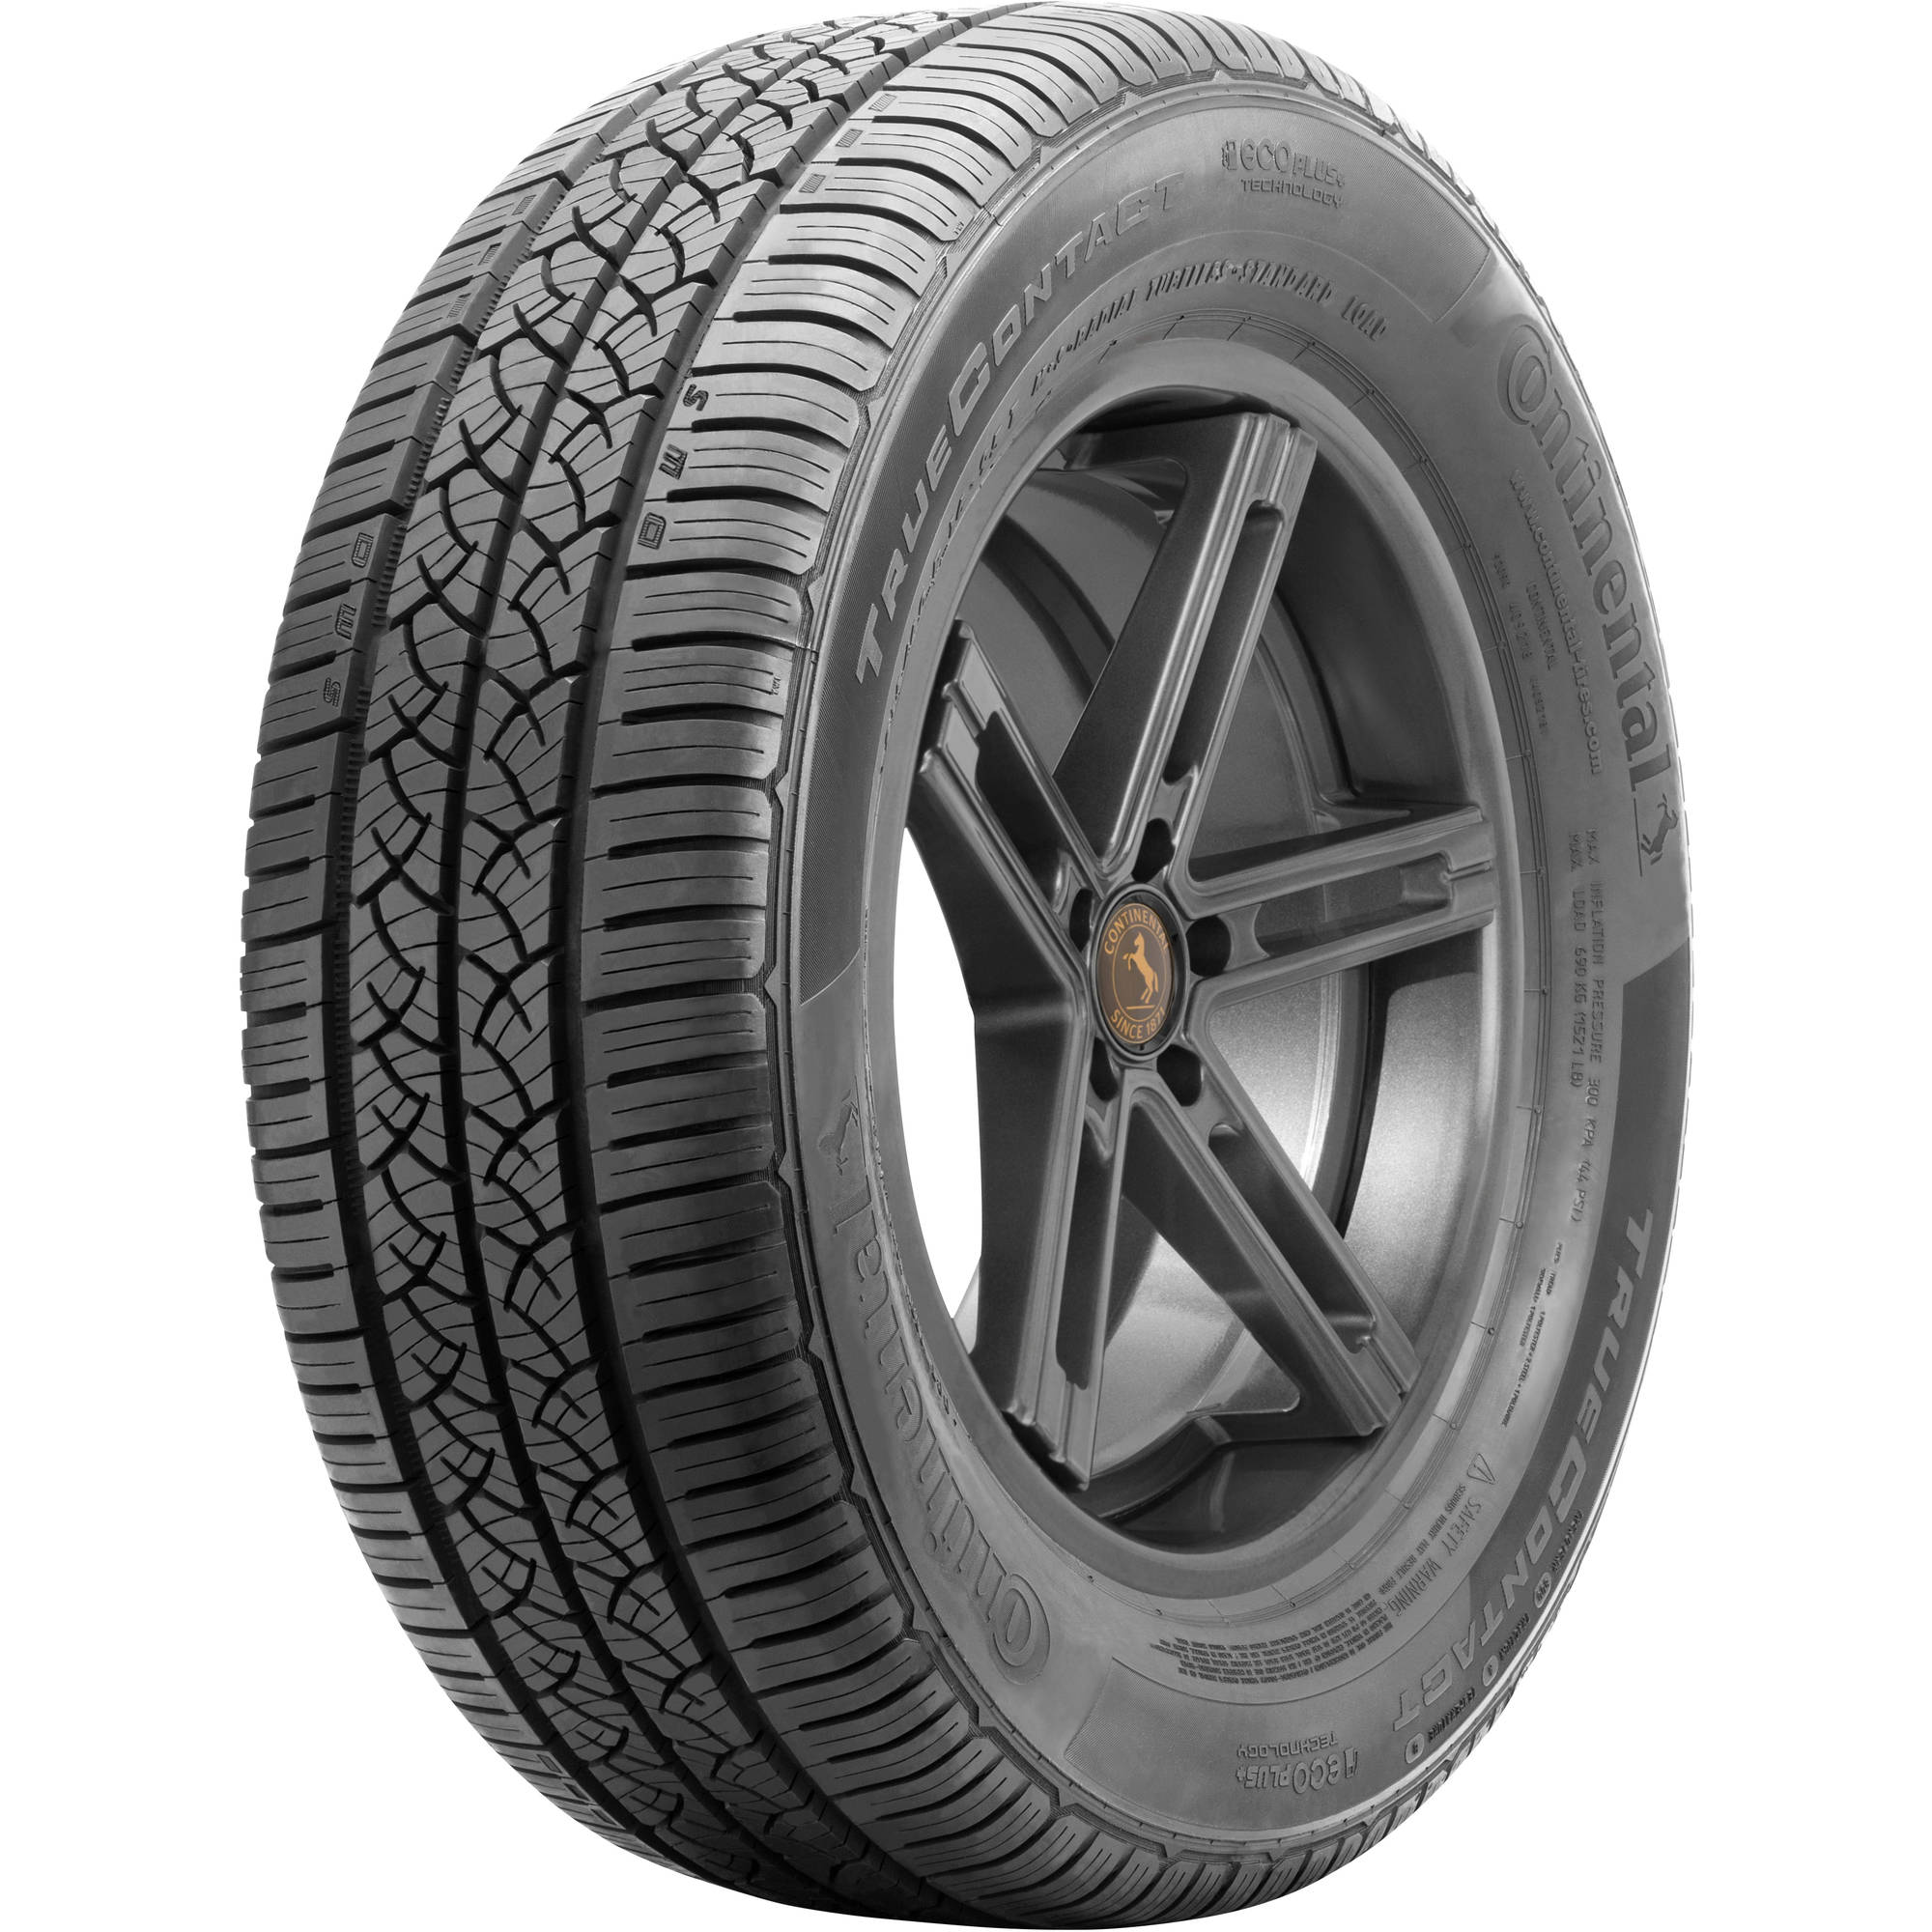 Continental Truecontact Tire 225/65R17 Tire 102T